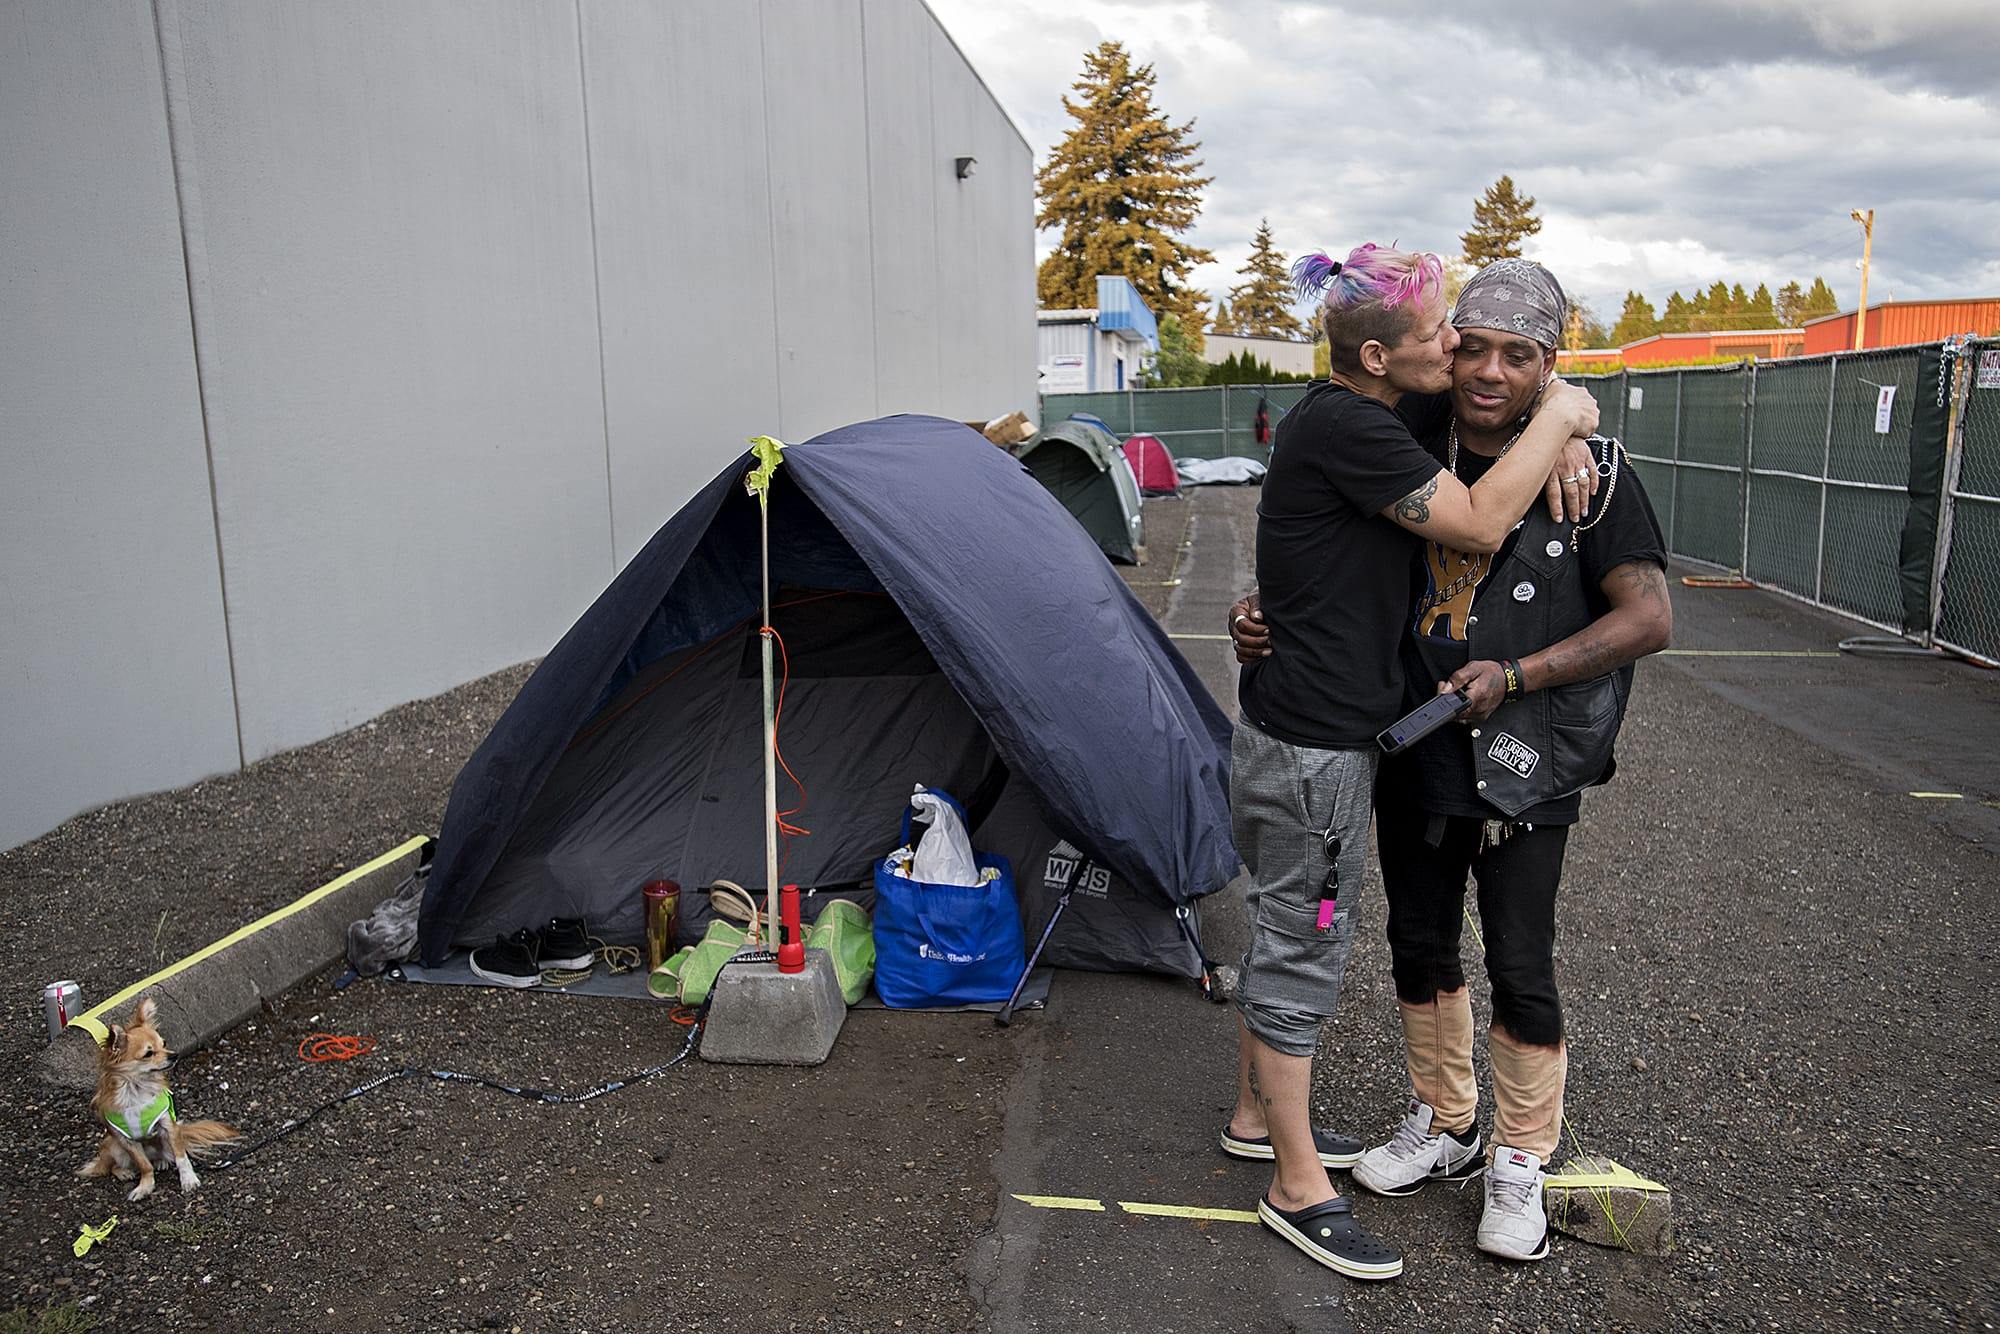 Mandi Holper, left, and Chris Winston share a quiet moment as they prepare to settle in for the night at the temporary homeless encampment outside Living Hope Church on Tuesday evening, May 5, 2020. (Amanda Cowan/The Columbian)